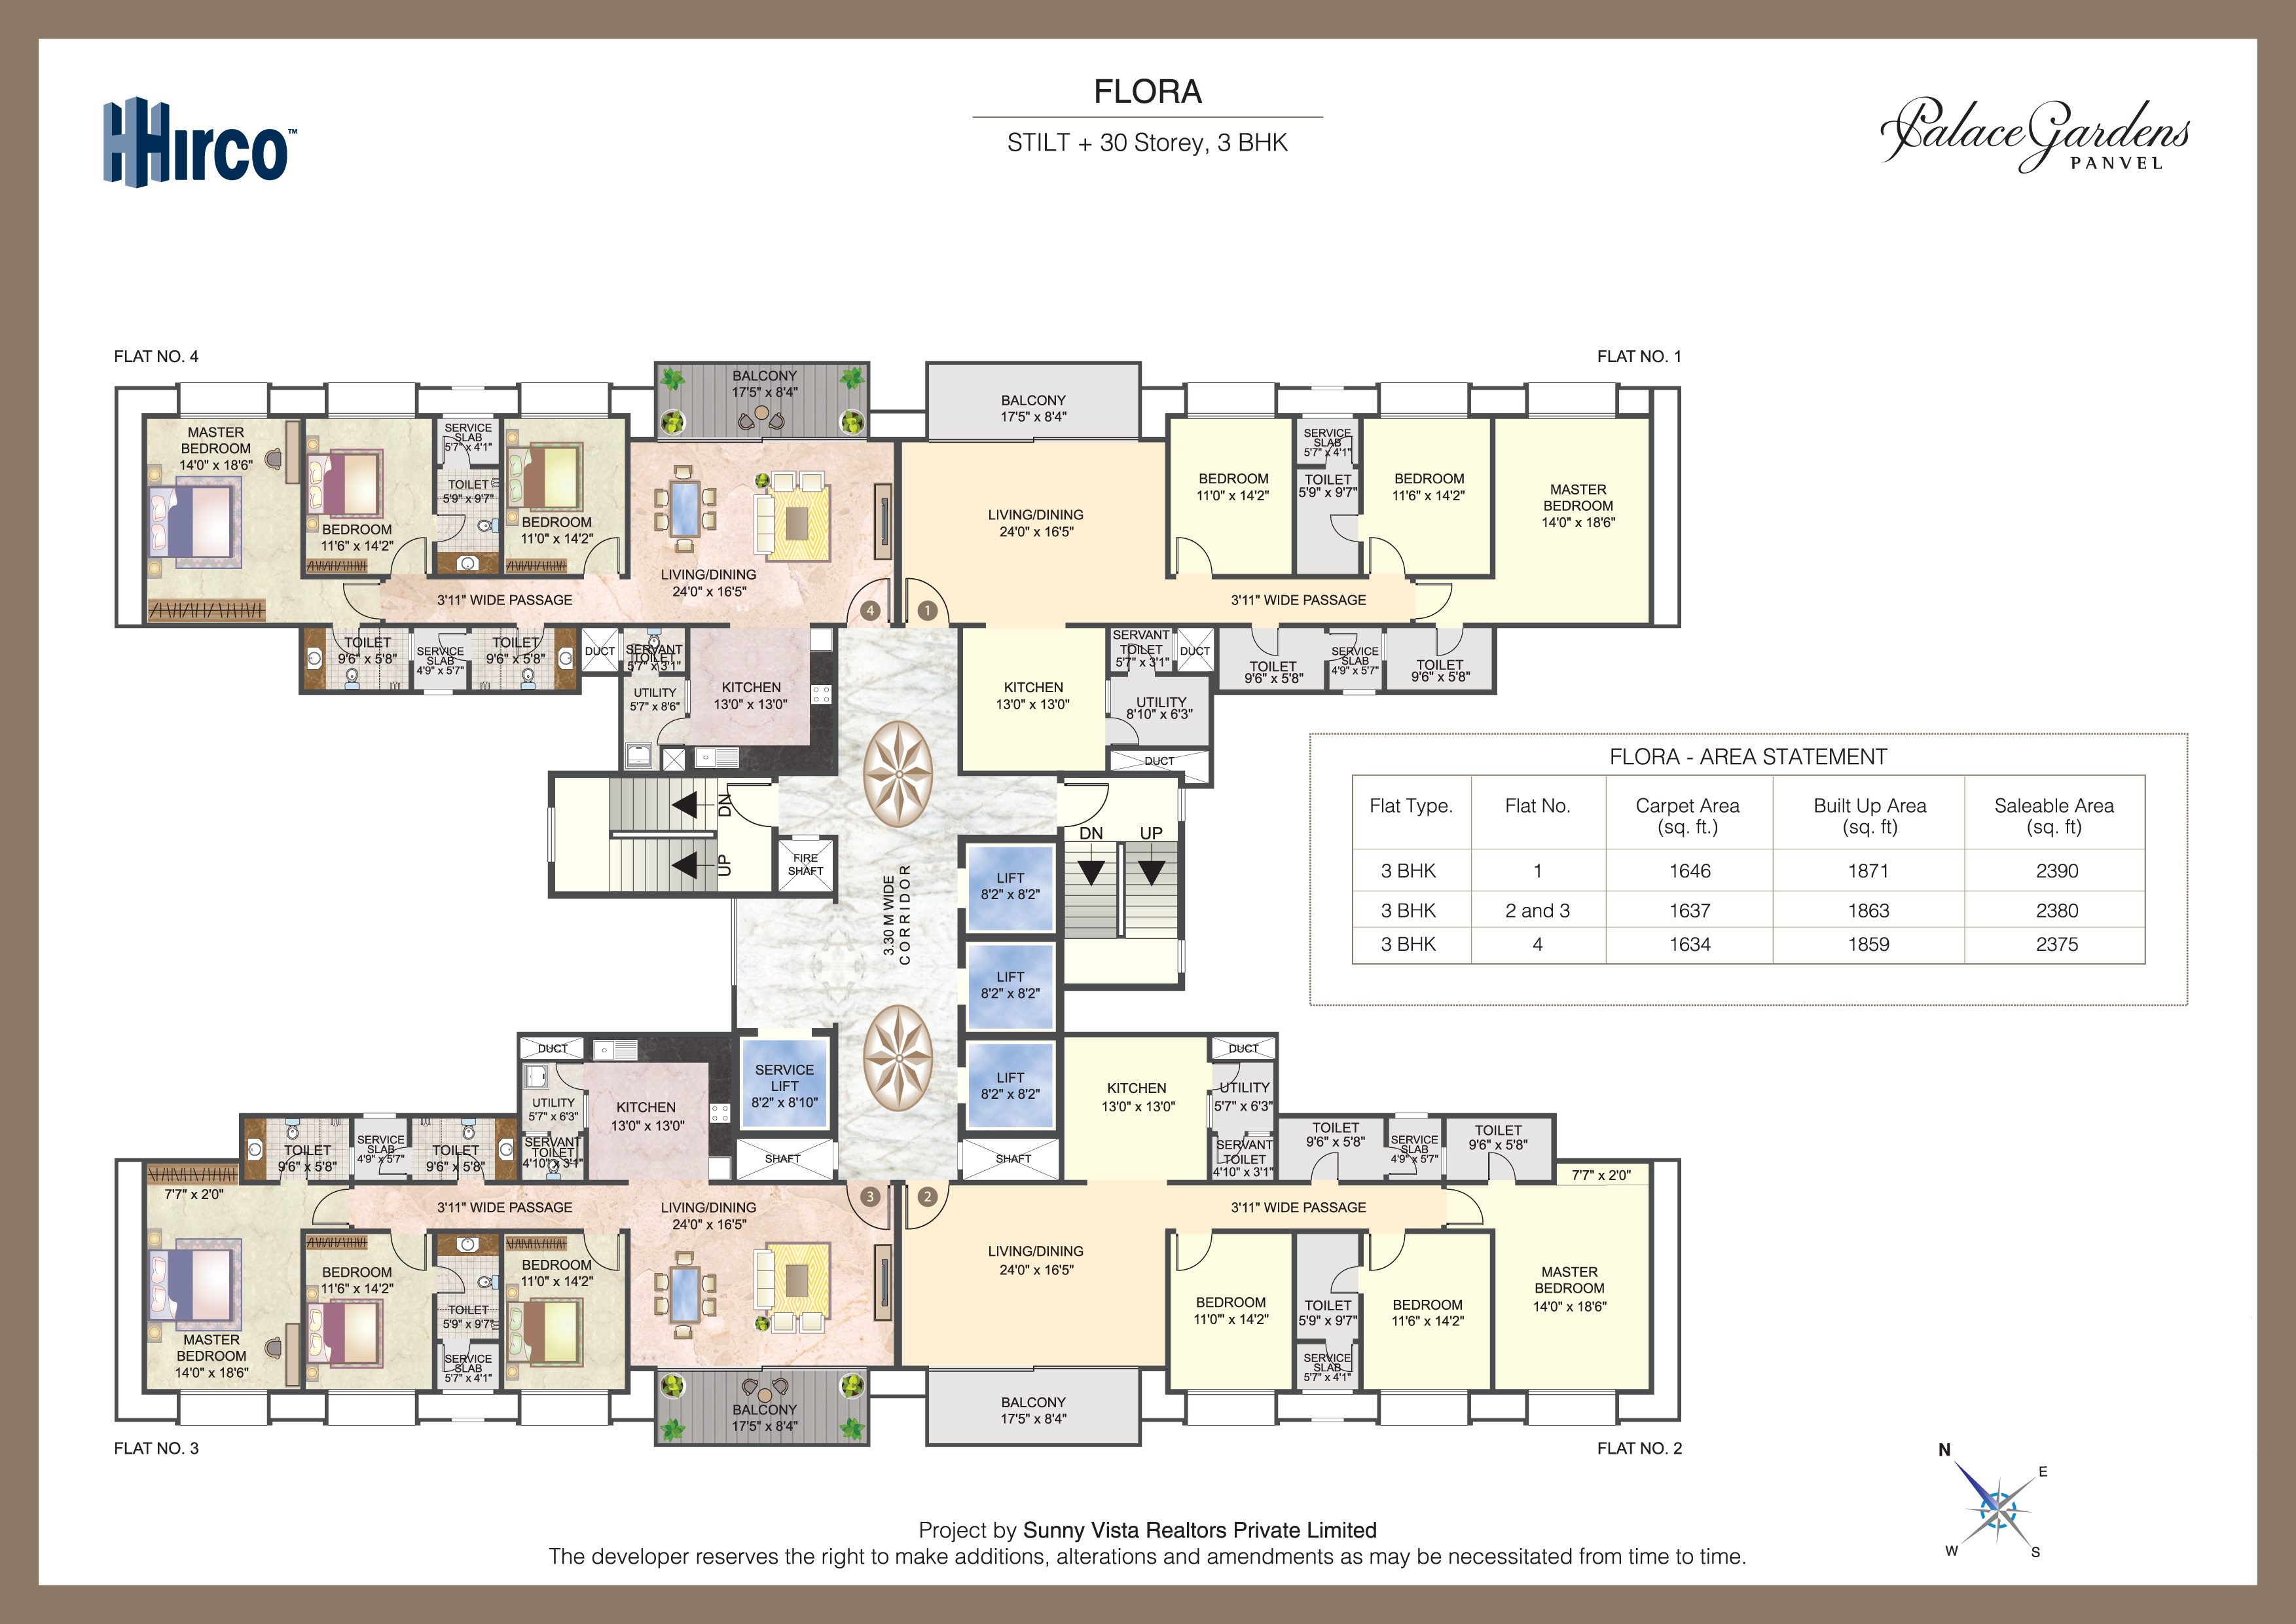 hirco palace gardens floor plans   panvel   mumbai india